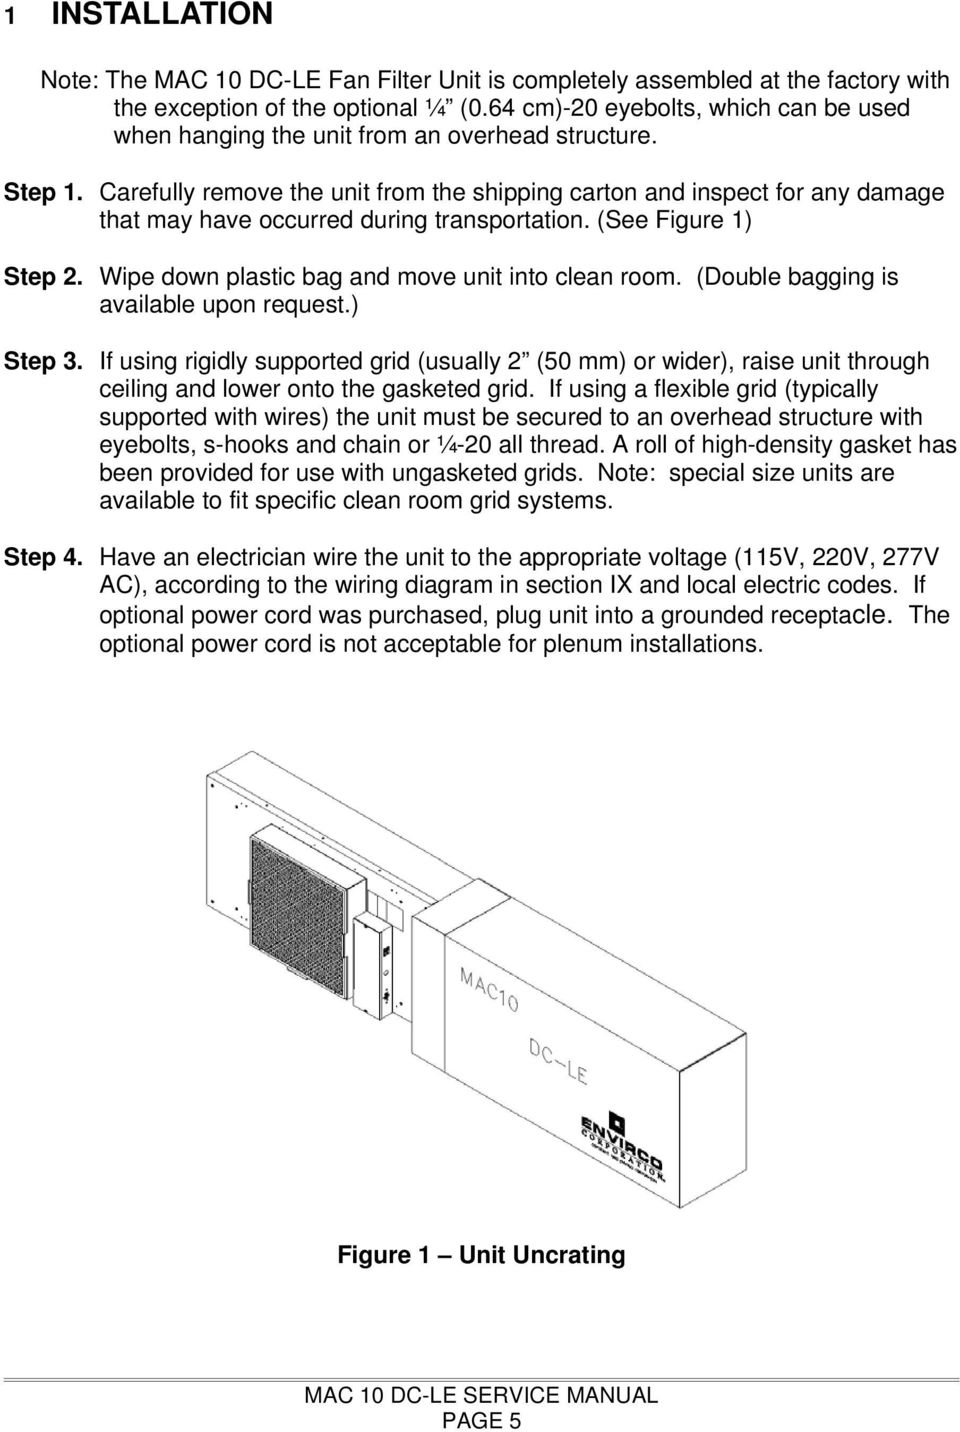 Mac 10 Dc Le Fan Filter Module Installation And Service Manual Pdf Ceiling Wiring Diagram Carefully Remove The Unit From Shipping Carton Inspect For Any Damage That May Have